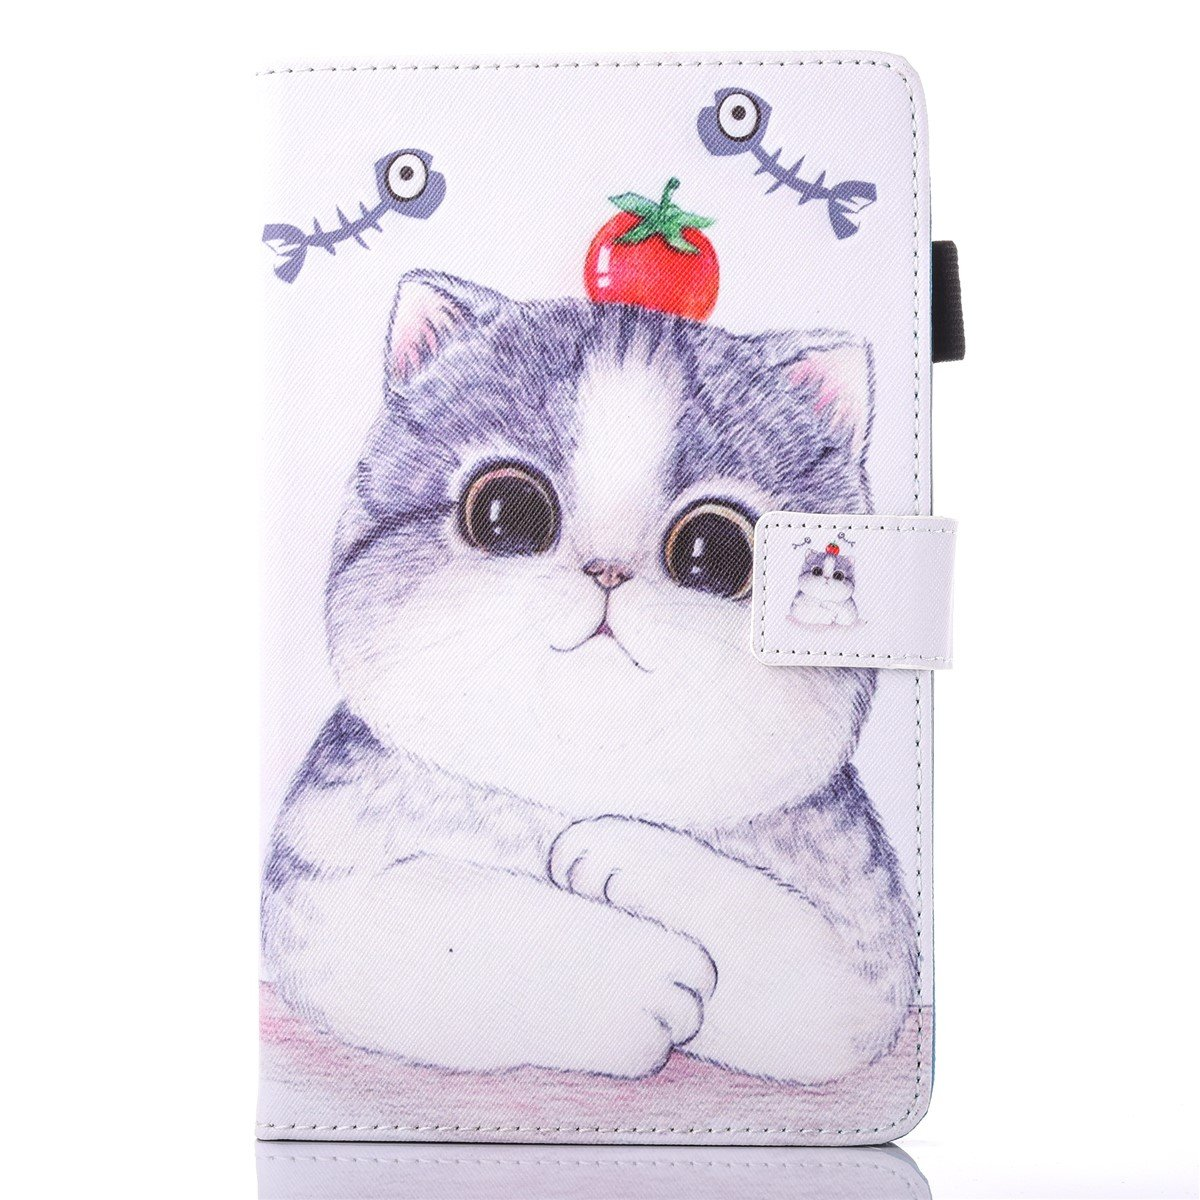 inShang T280 Case for Samsung Galaxy TAB A 7.0 inch T 280, with Color Painting Pattern, Stand Cover